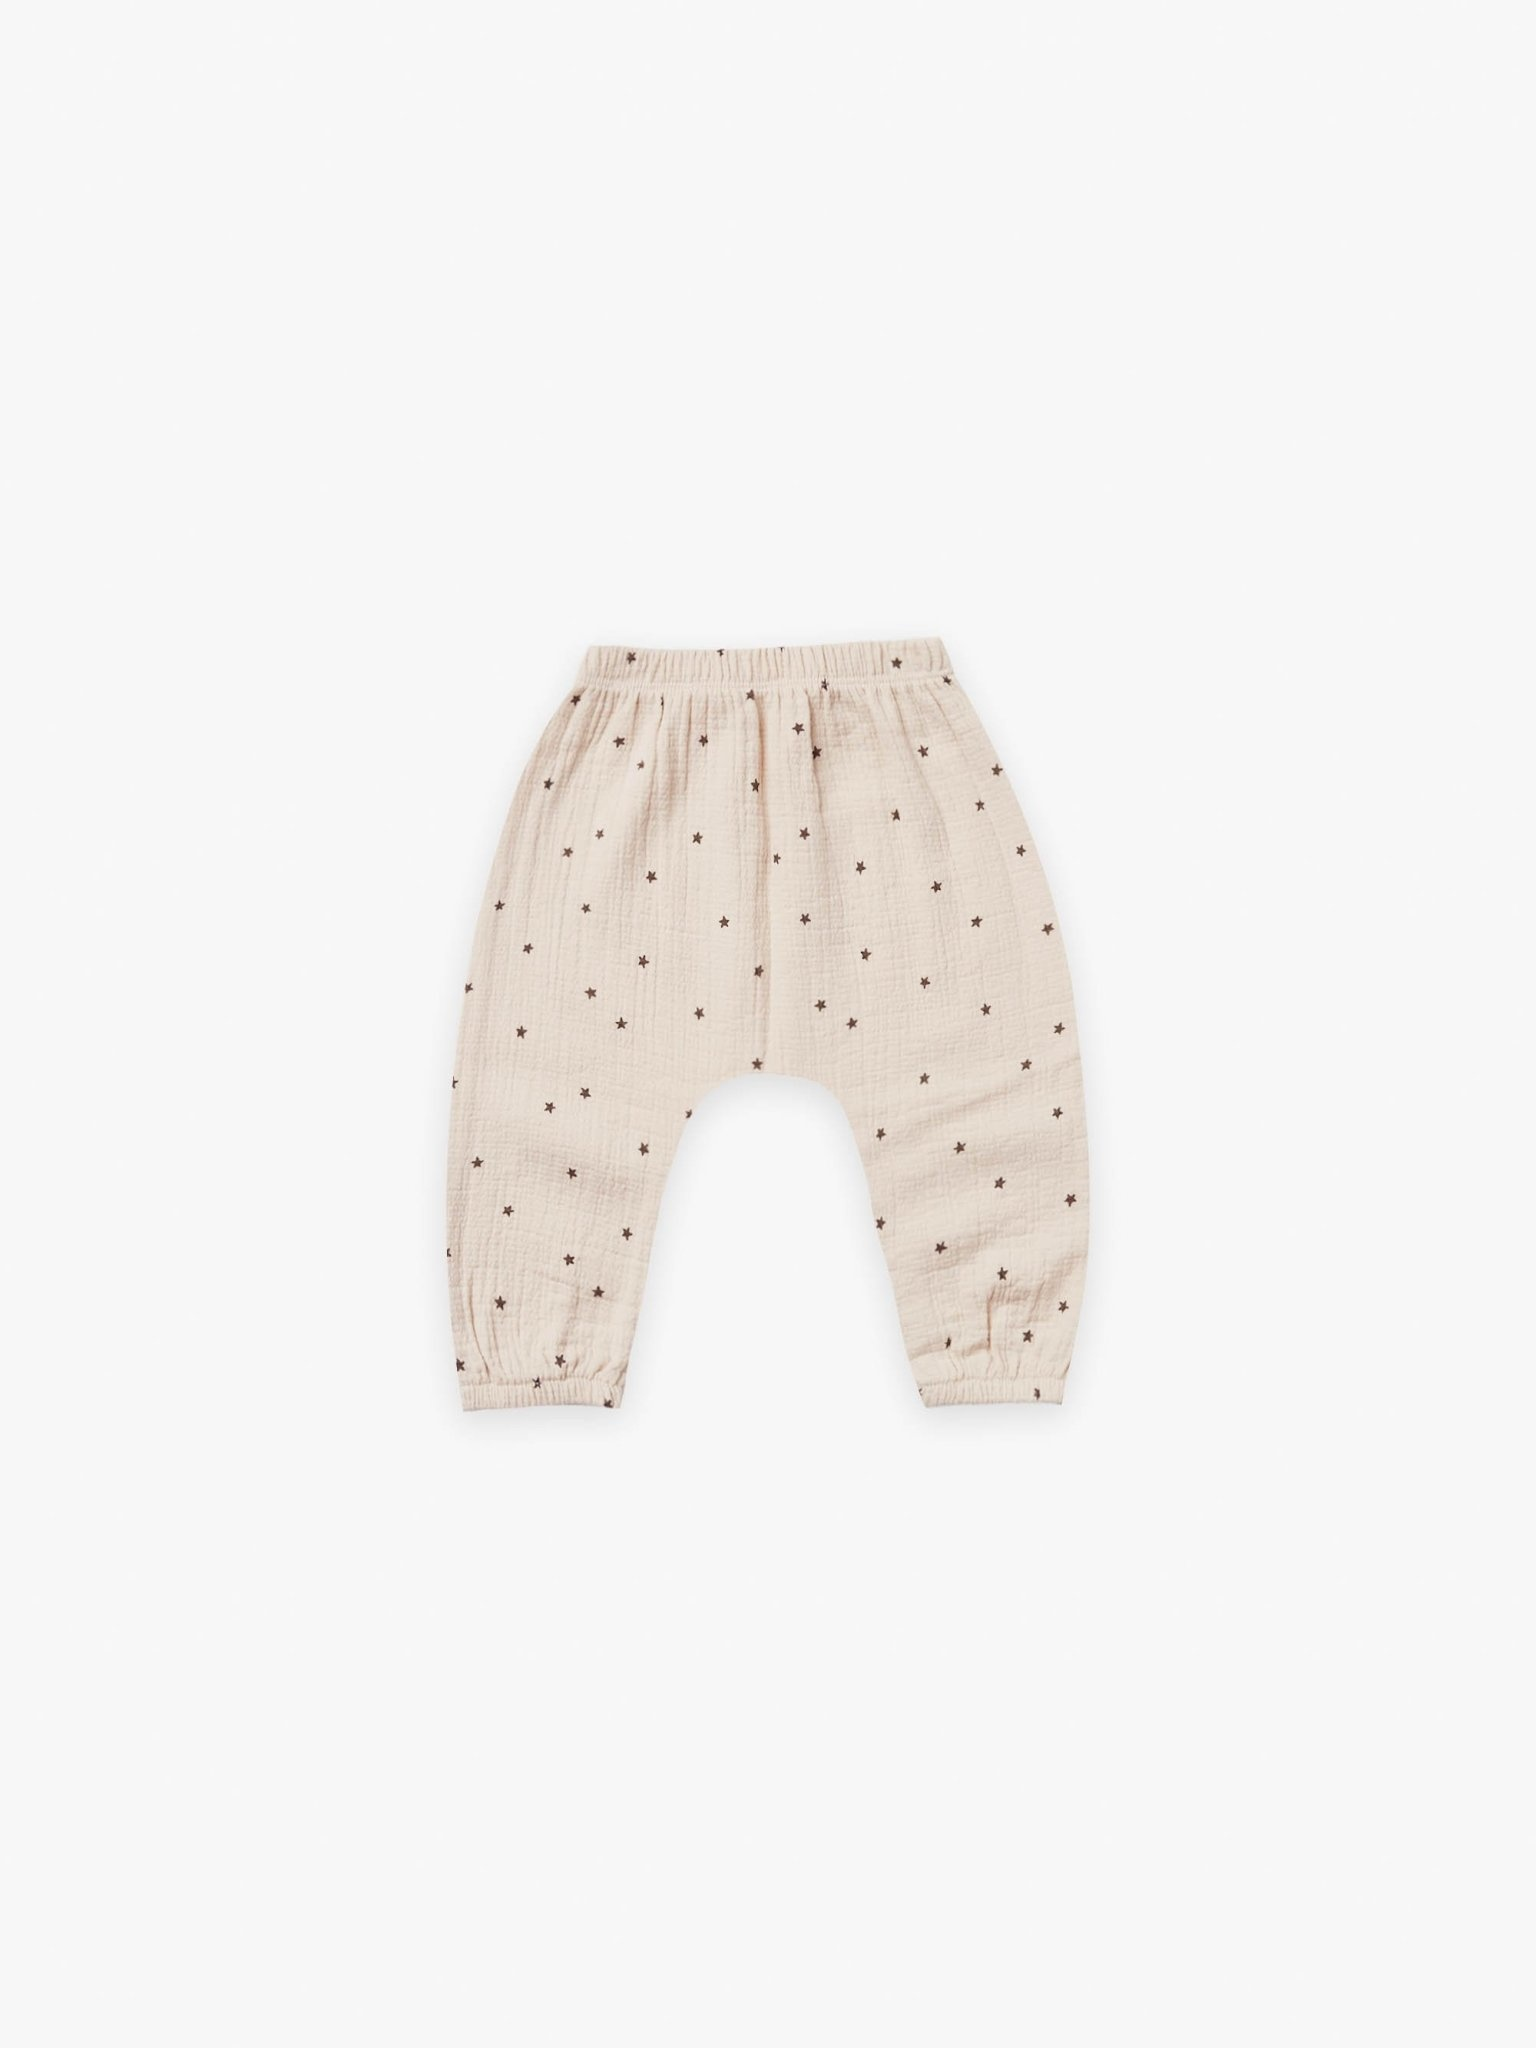 Quincy Mae Quincy Mae | Woven Harem Pant Natural